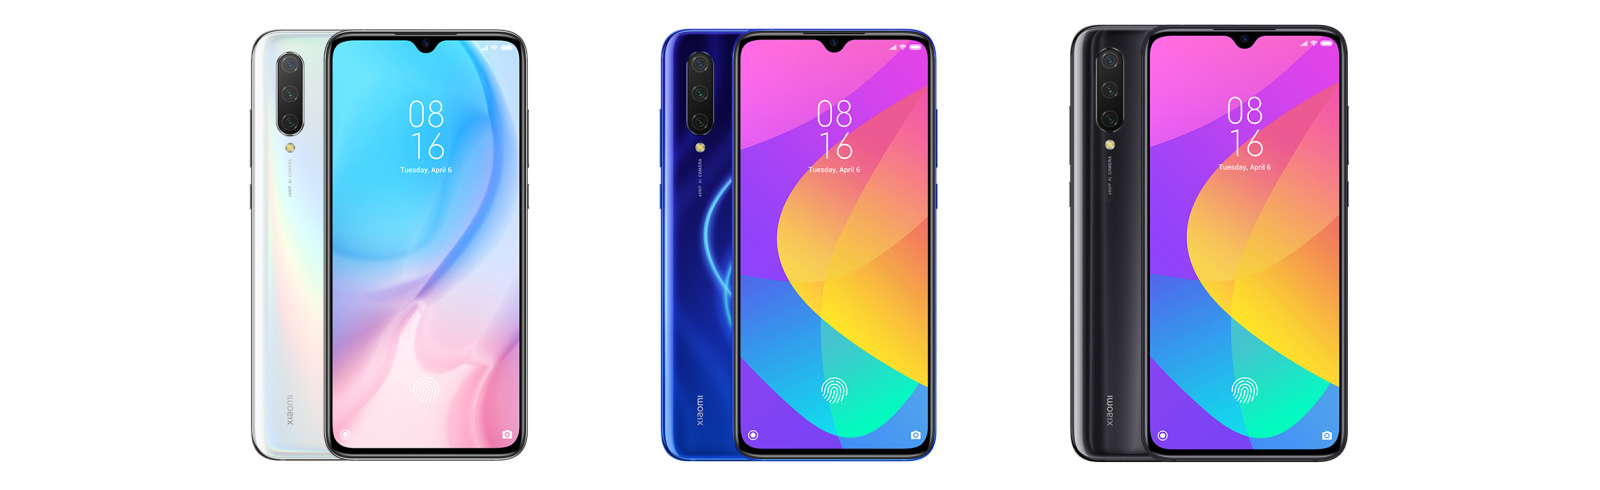 Xiaomi Mi 9 Lite goes official, the Mi 9 series is now complete